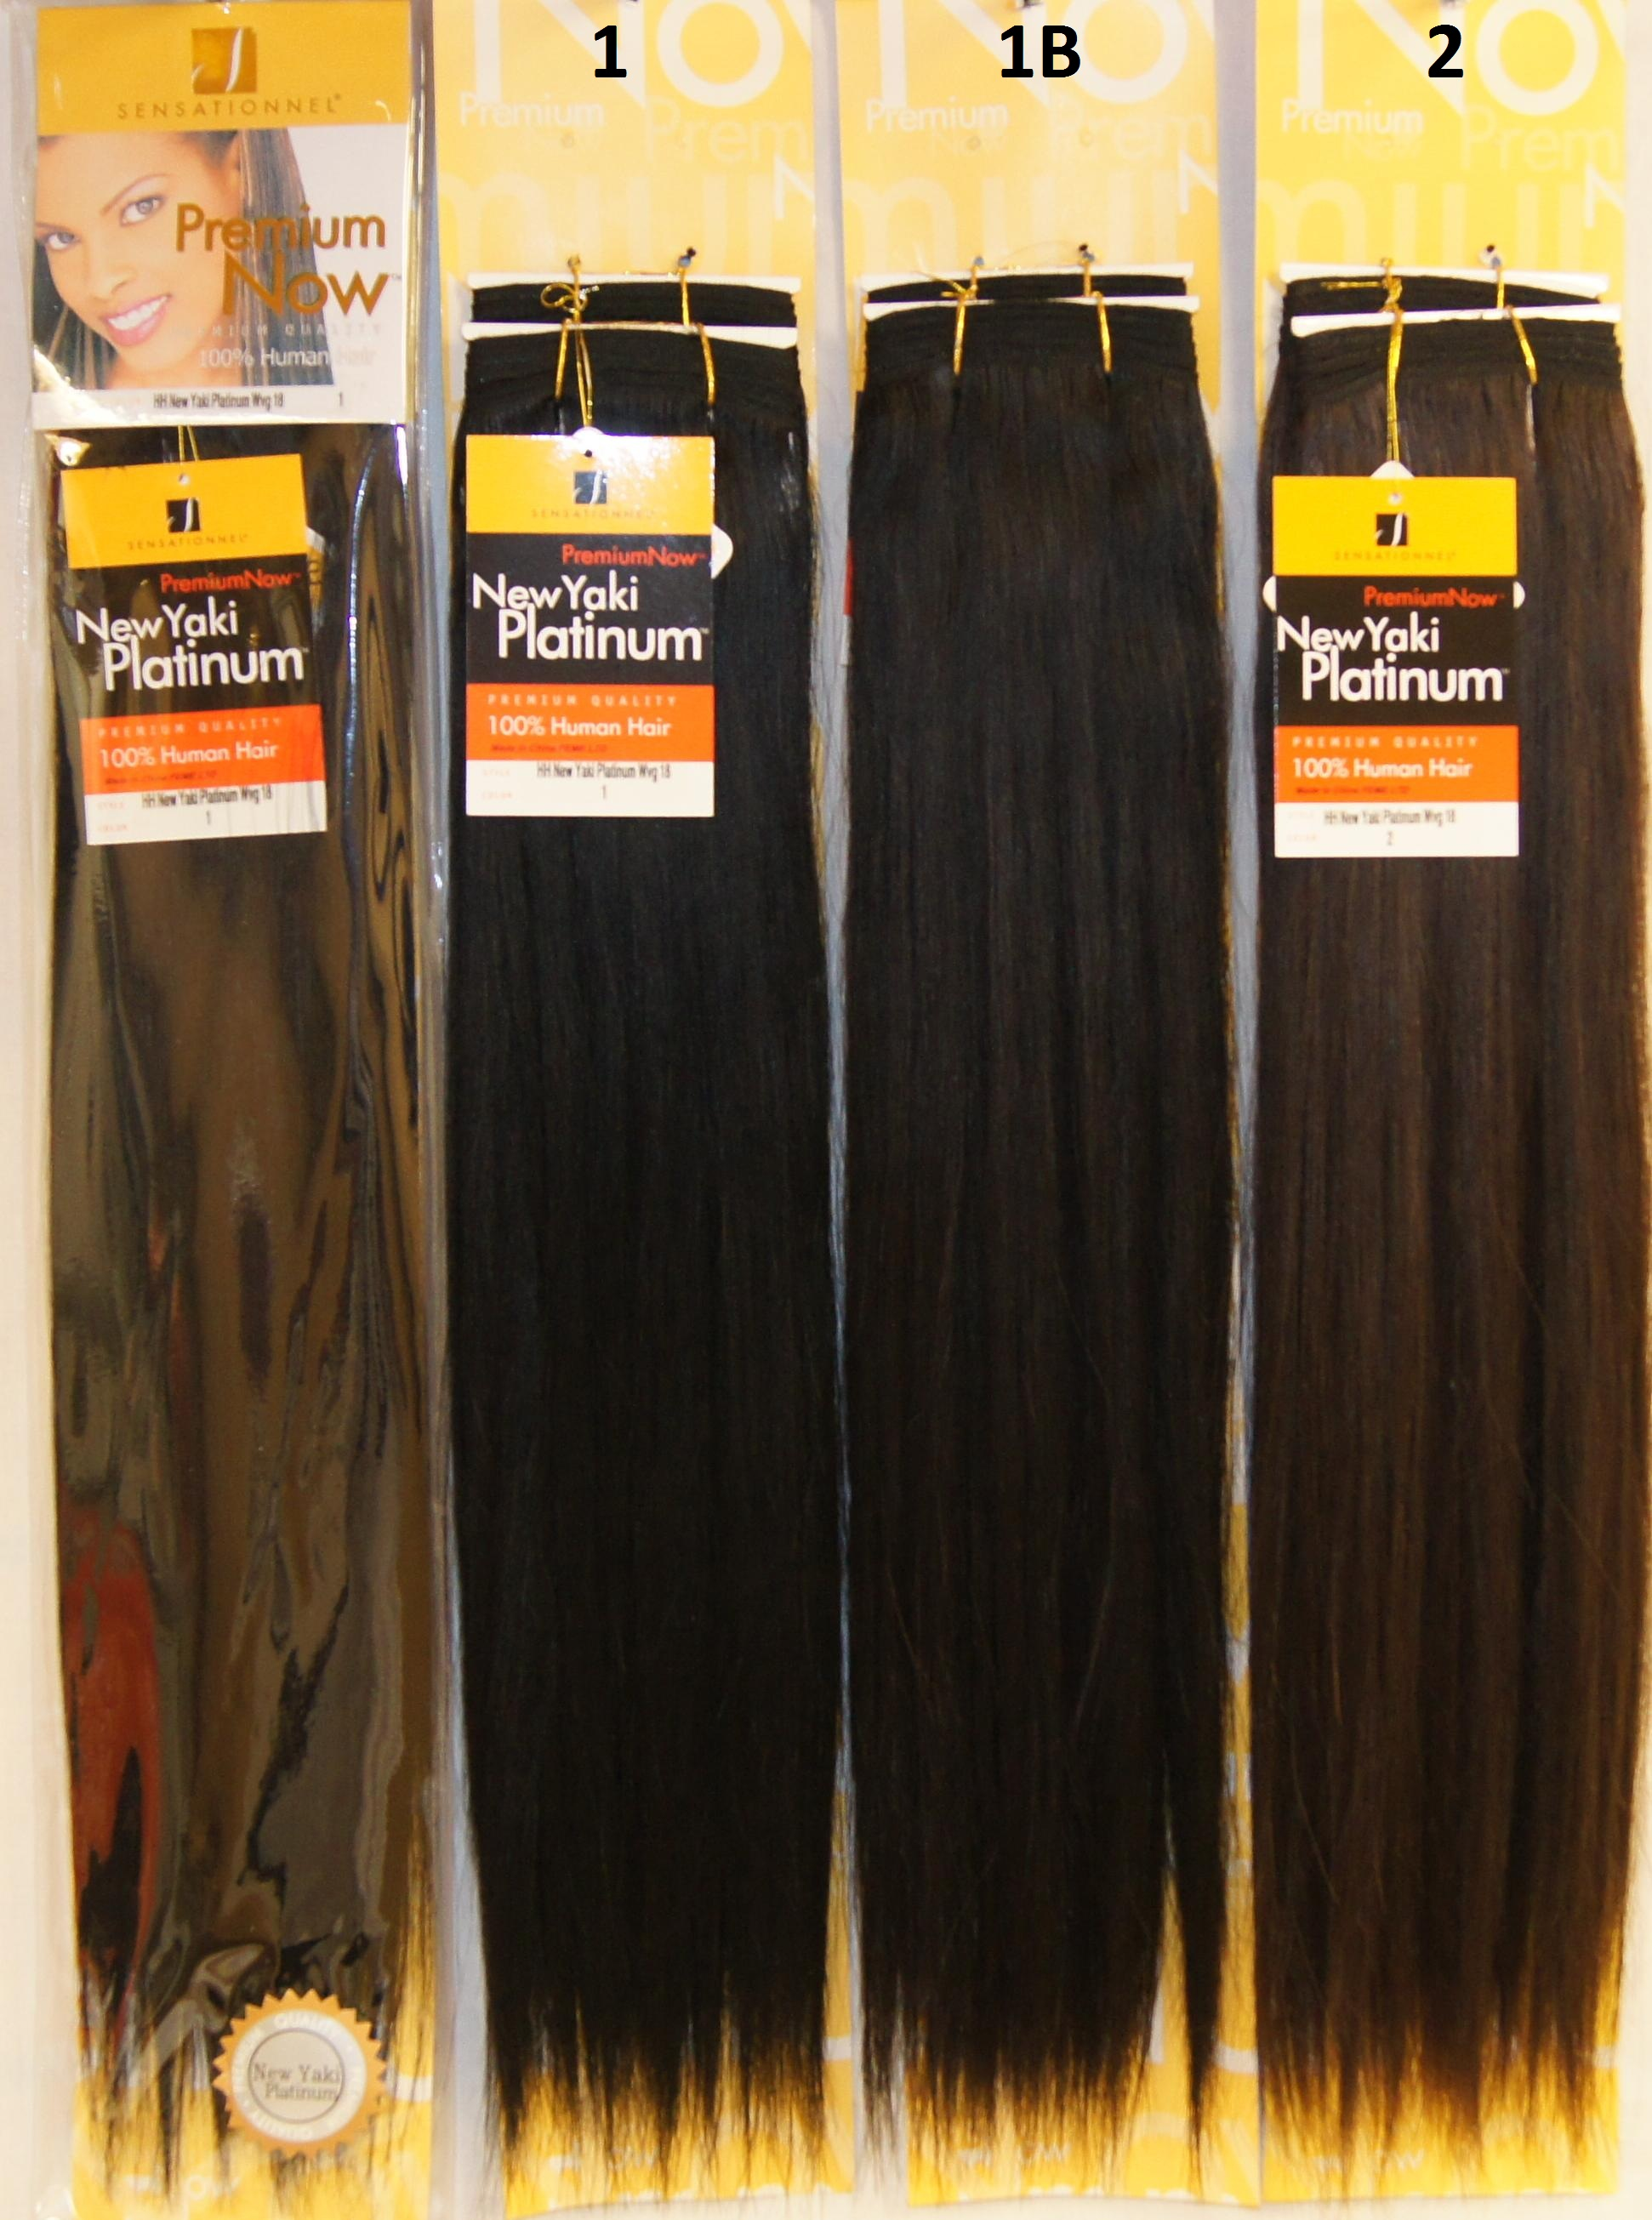 Sensationnel Premium Now 100 Human Hair New Yaki Platinum 115